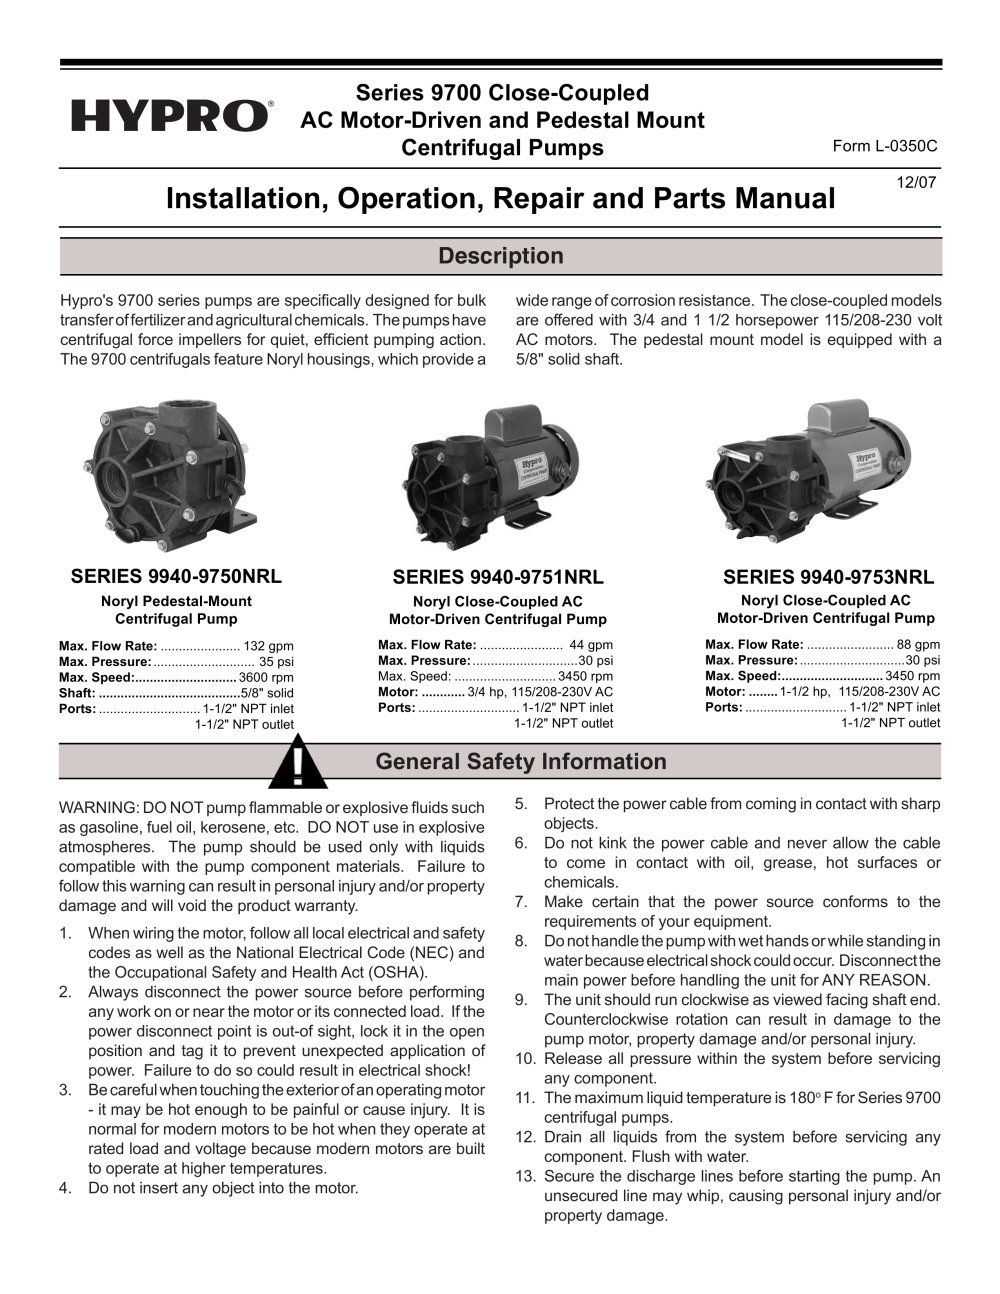 Series 9700 Close-Coupled Electric Driven Pumps Operation ...